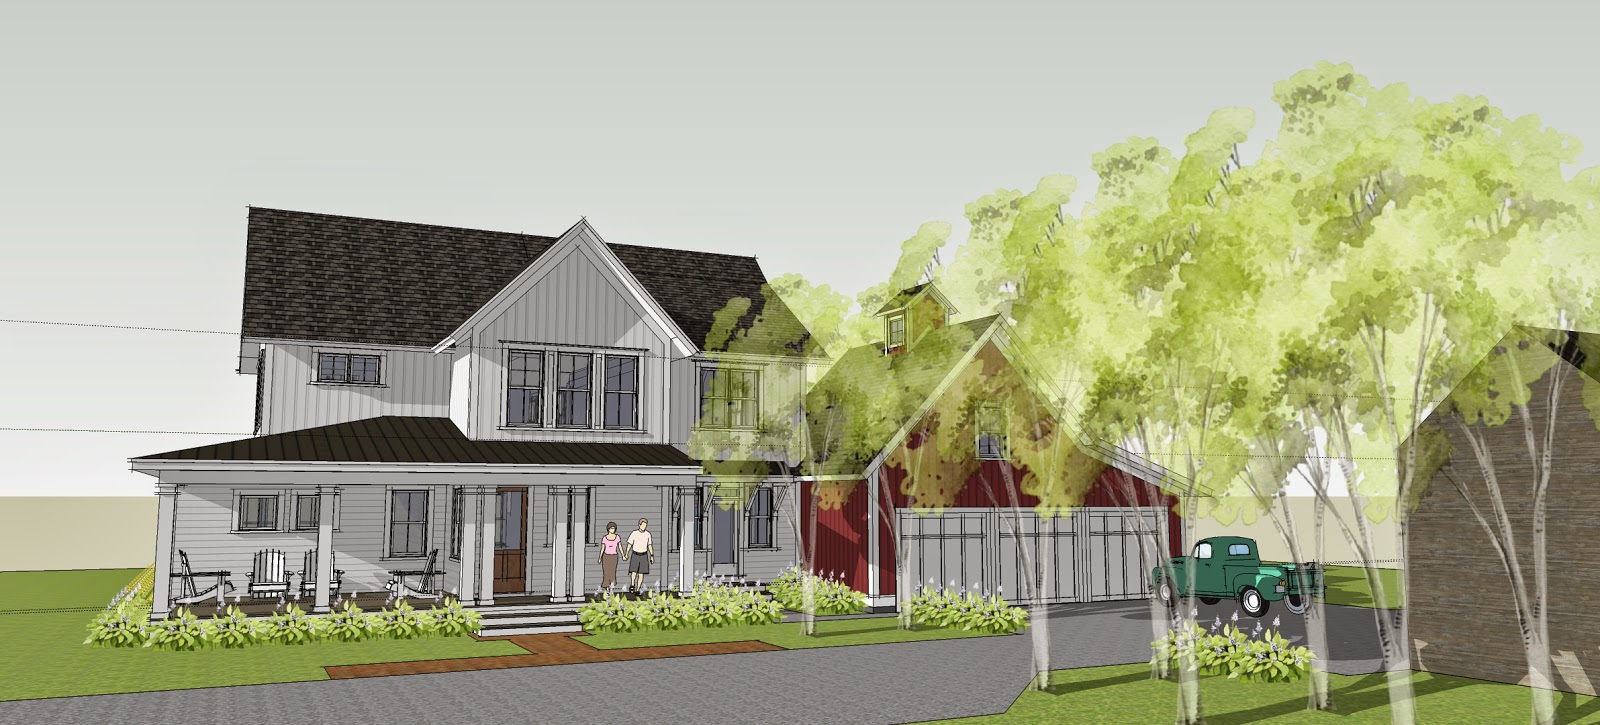 Simply Elegant Home Designs Blog: New Modern Farmhouse by